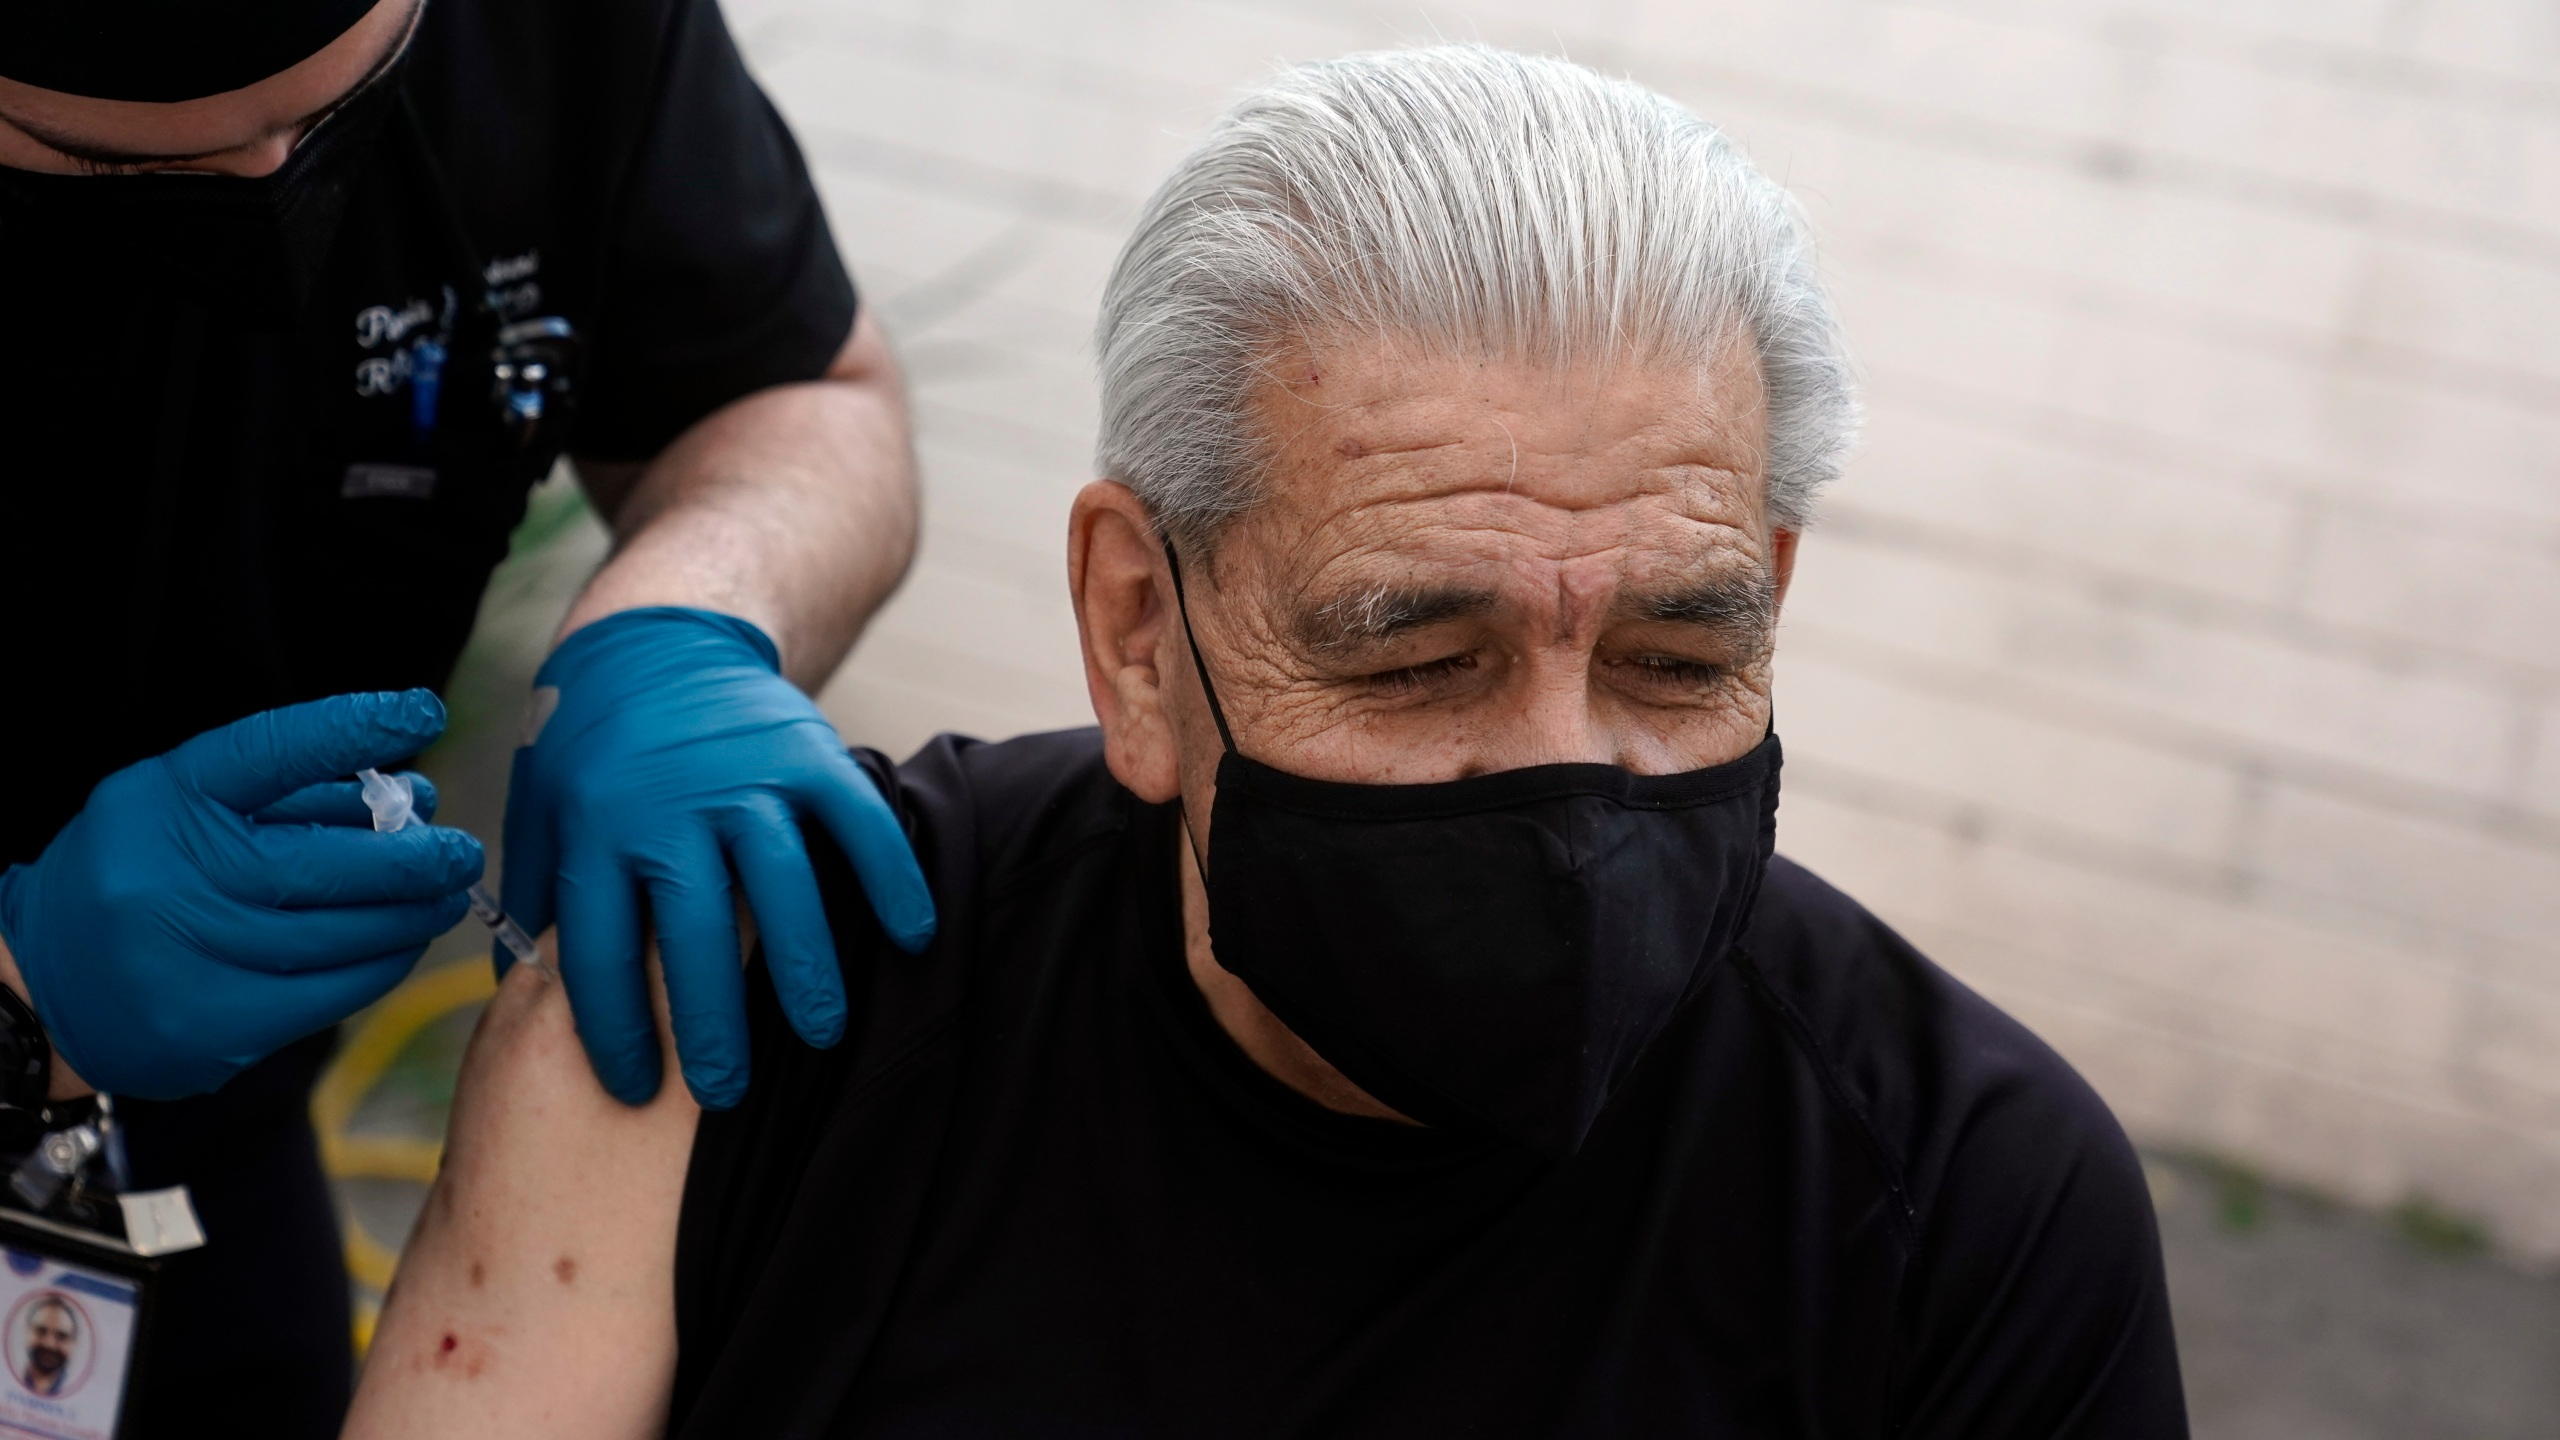 Edward Muro gets a shot of Pfizer's COVID-19 vaccine at Families Together of Orange County Community Health Center in Tustin on Feb. 26, 2021. (Marcio Jose Sanchez / Associated Press)